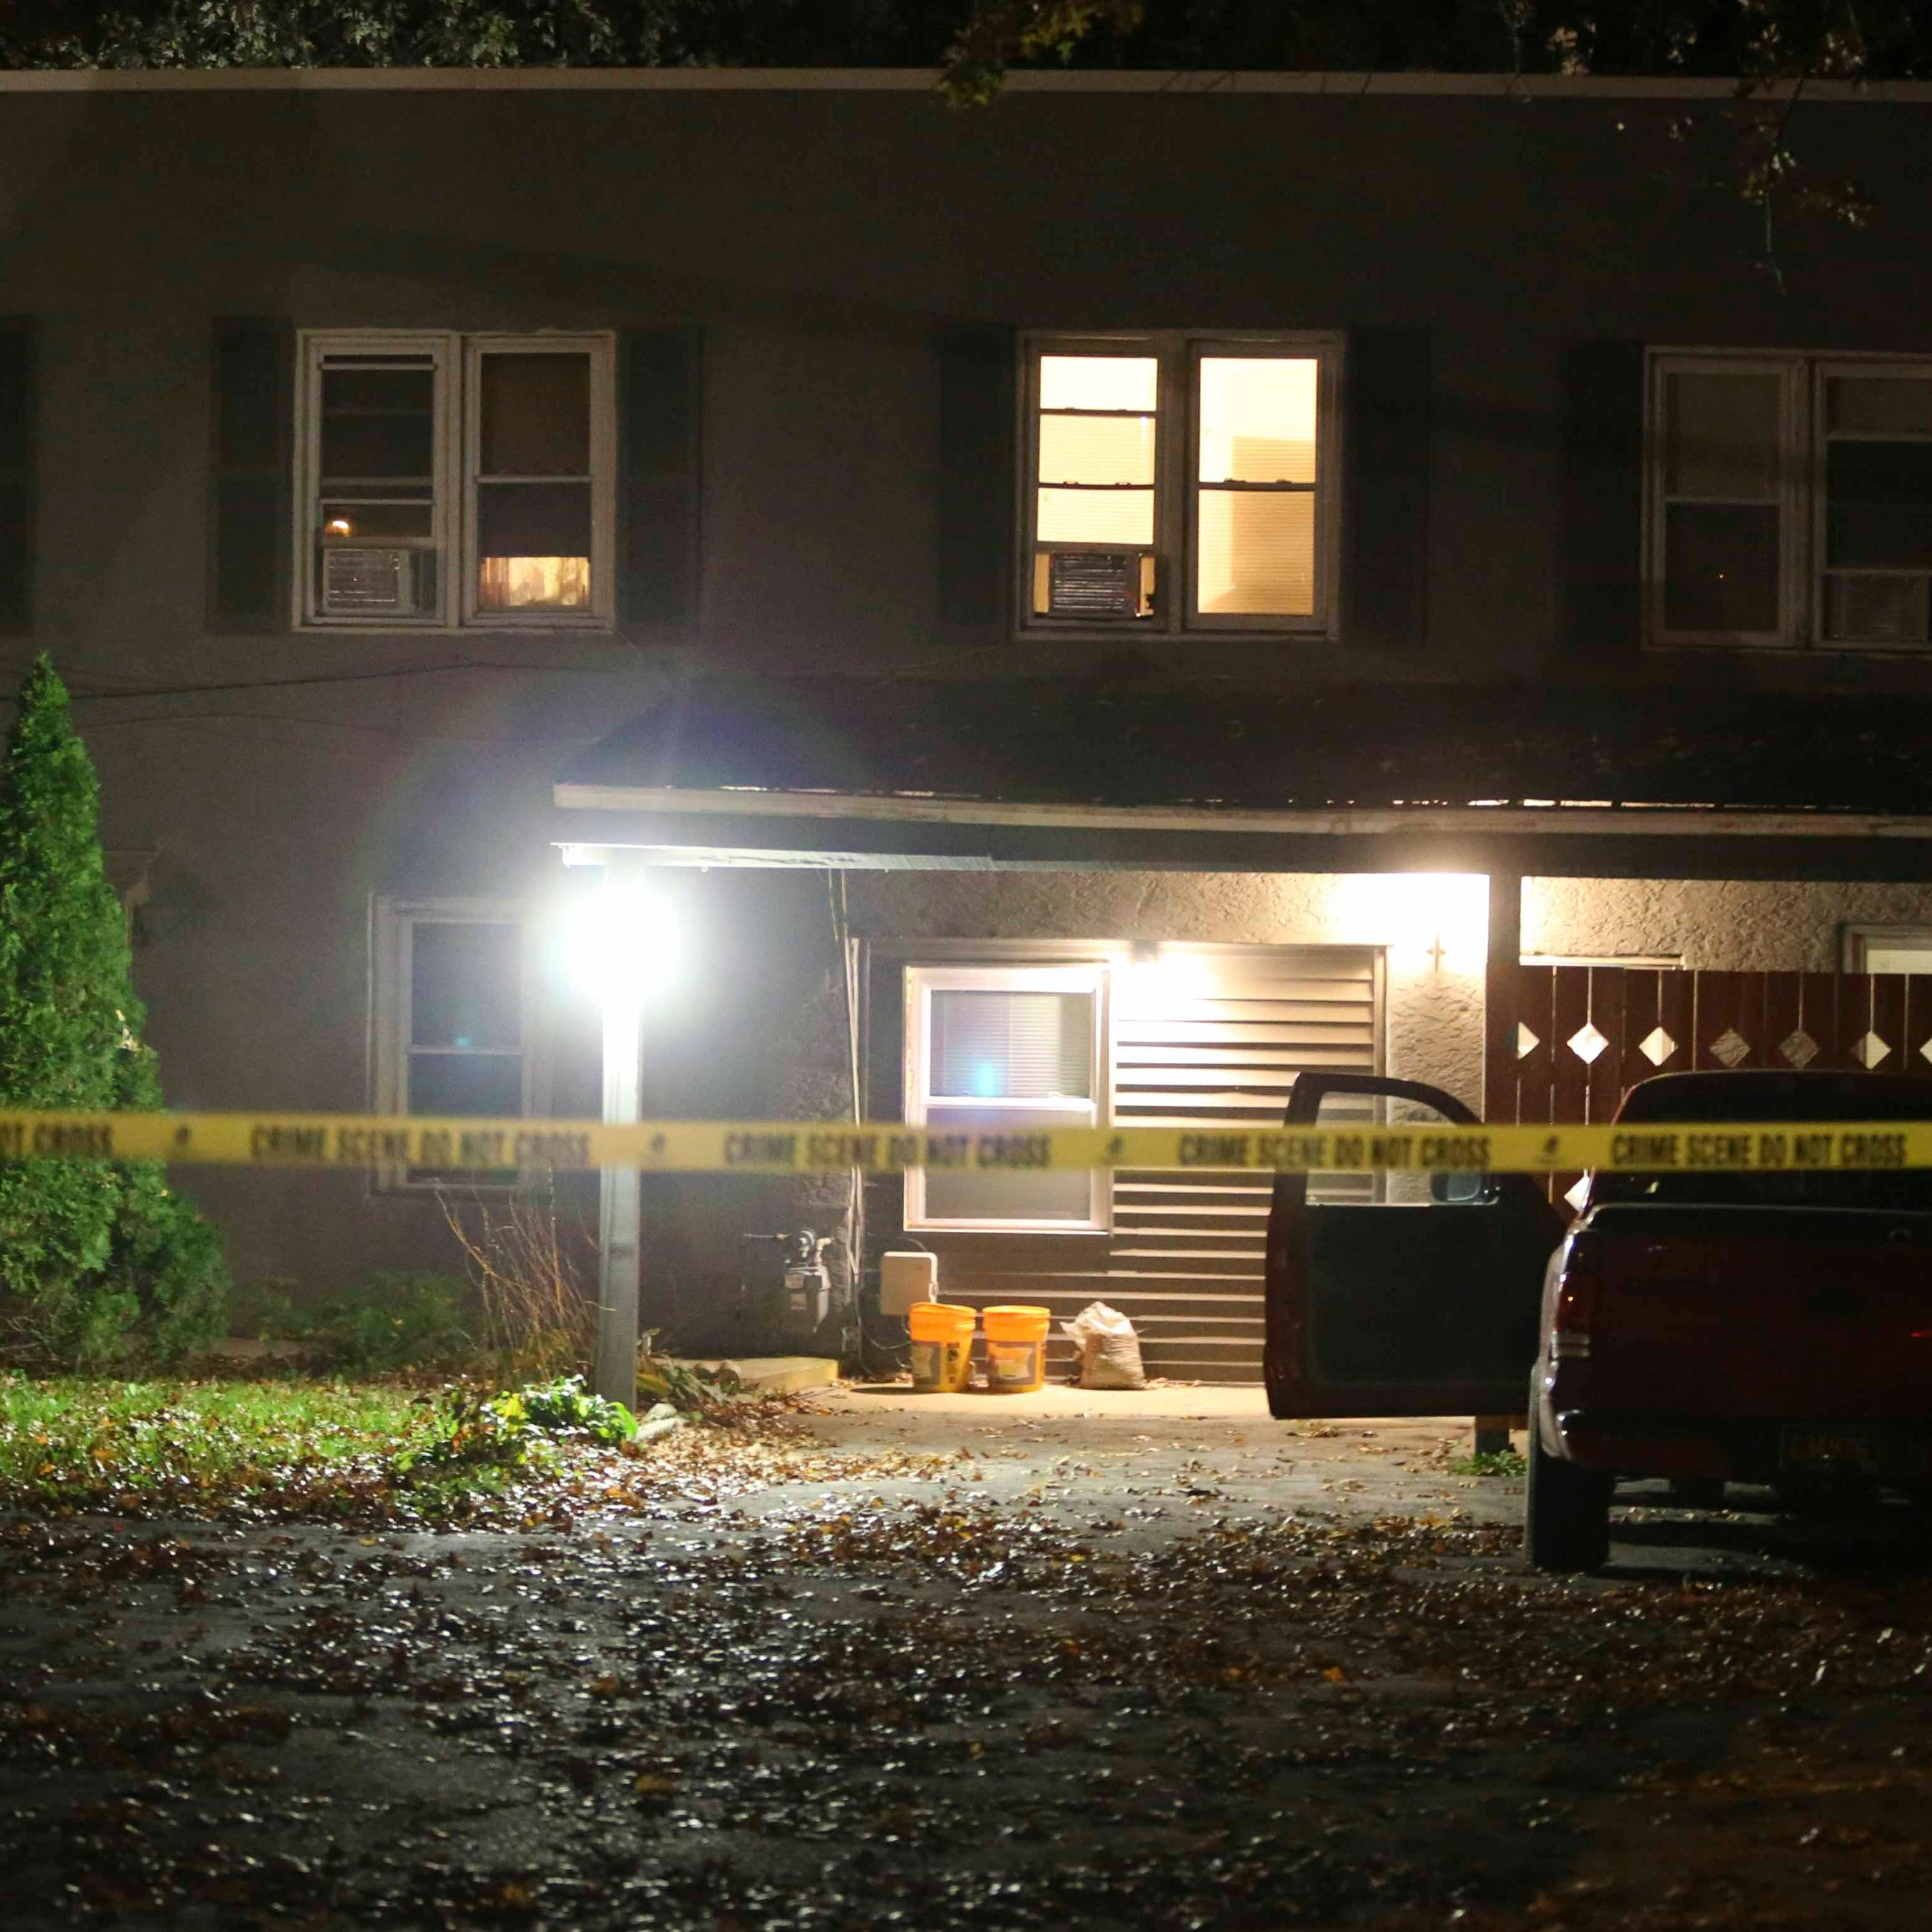 Drug hallucinations inspired Claymont killing, says suspect in court records